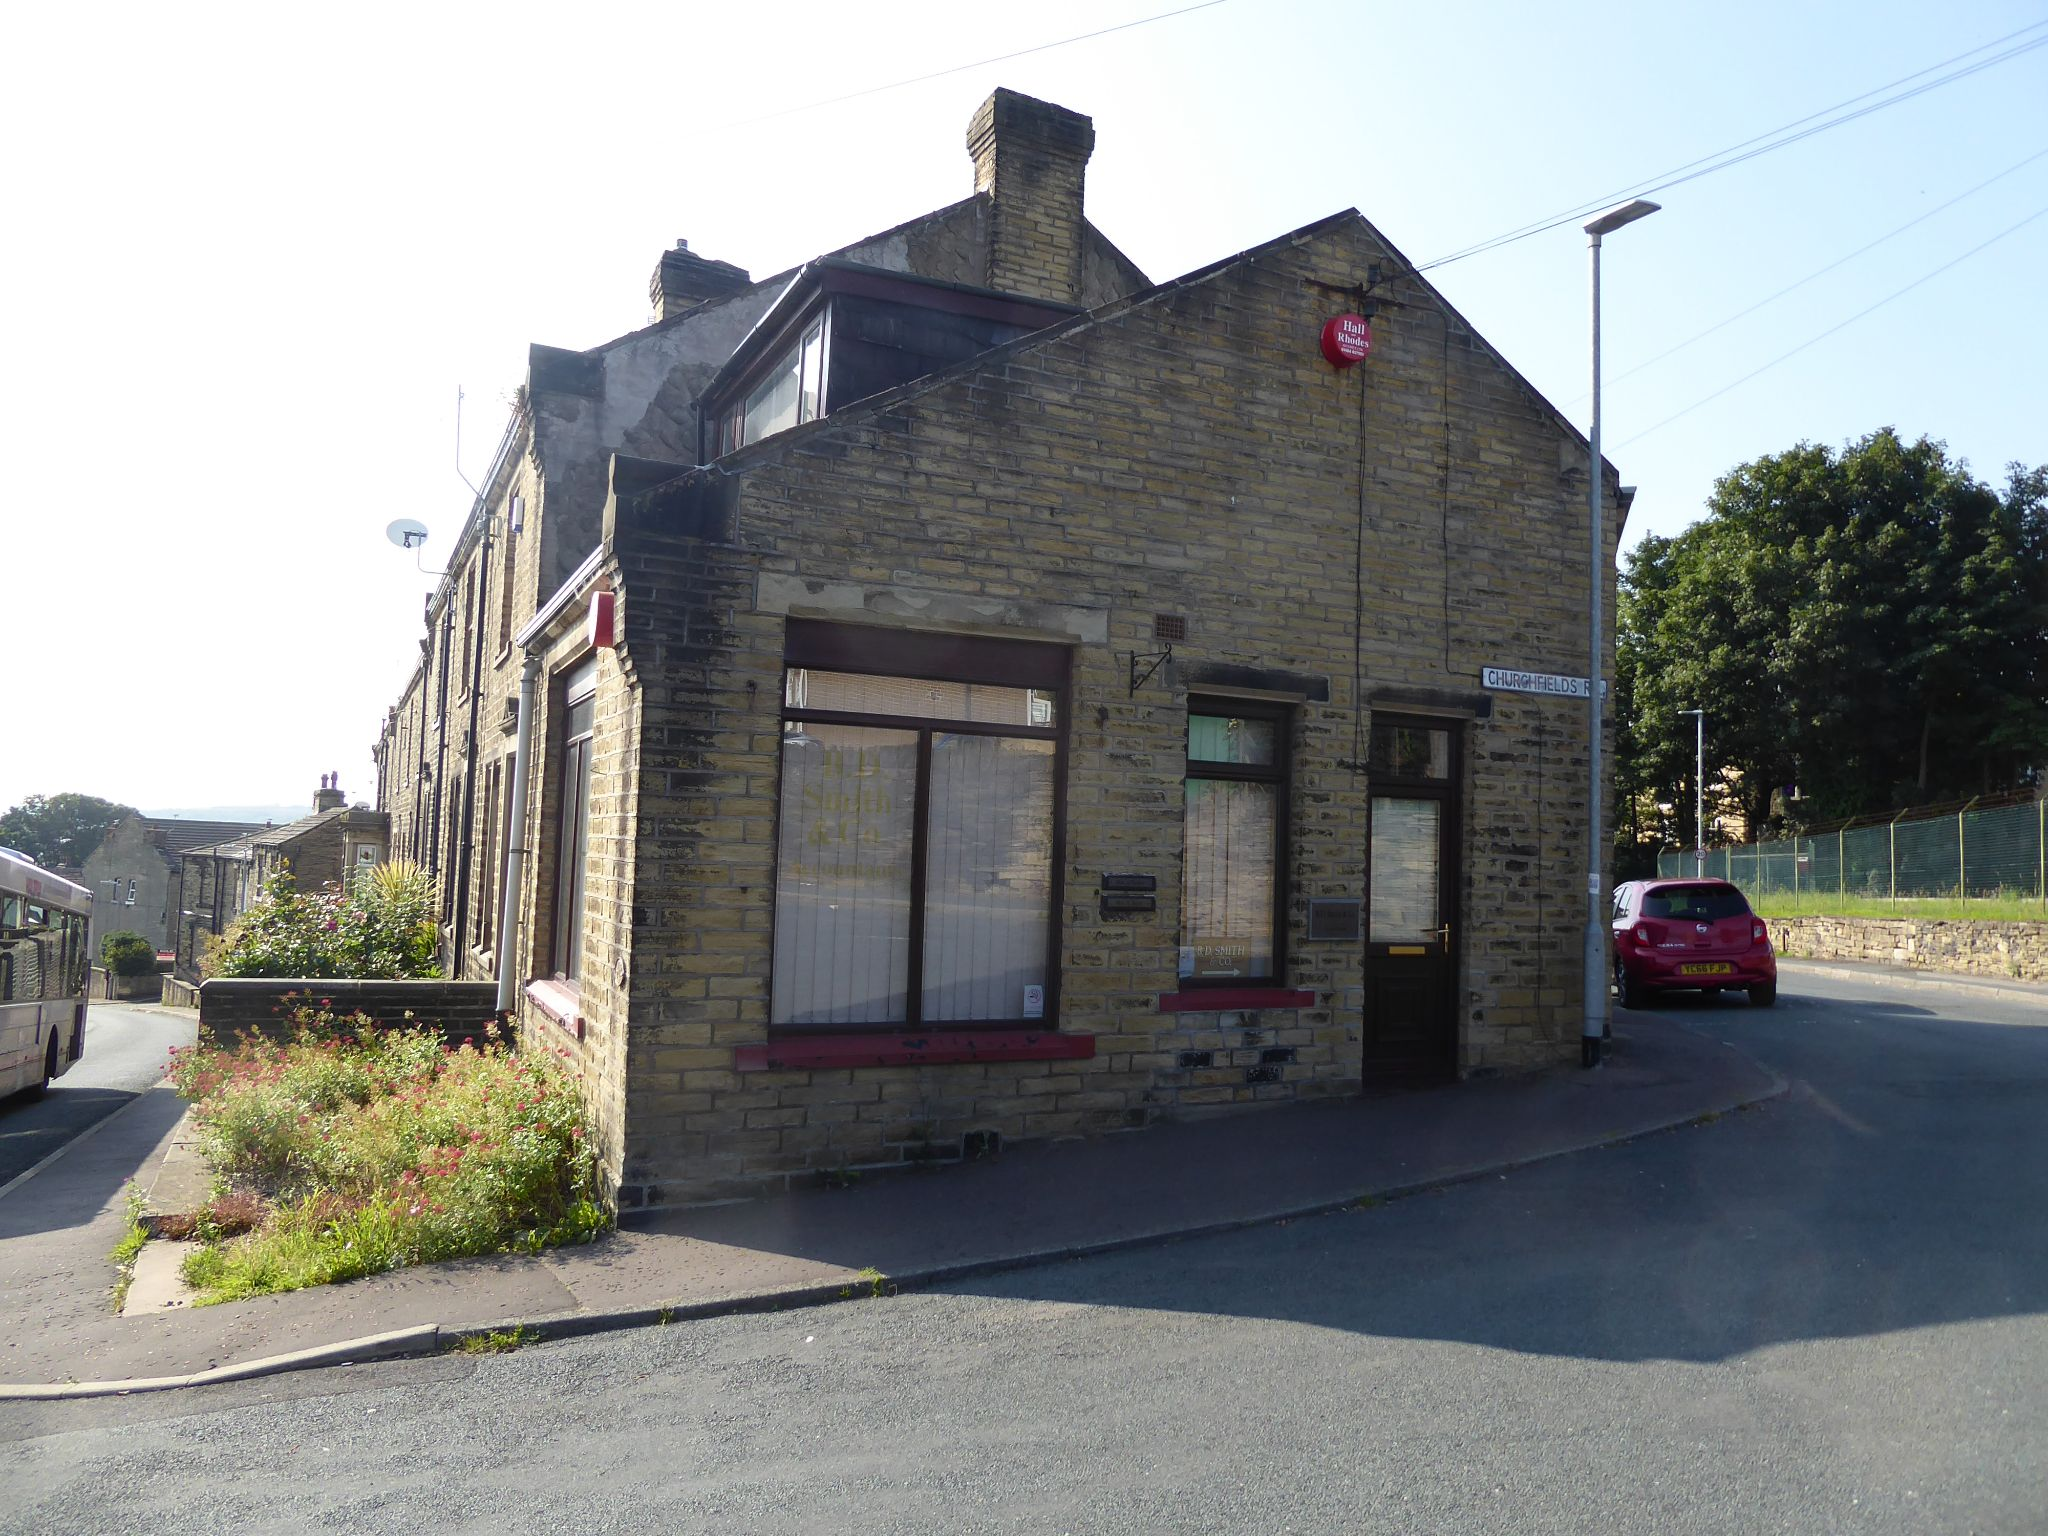 Commercial Property To Let in Brighouse - Property photograph.